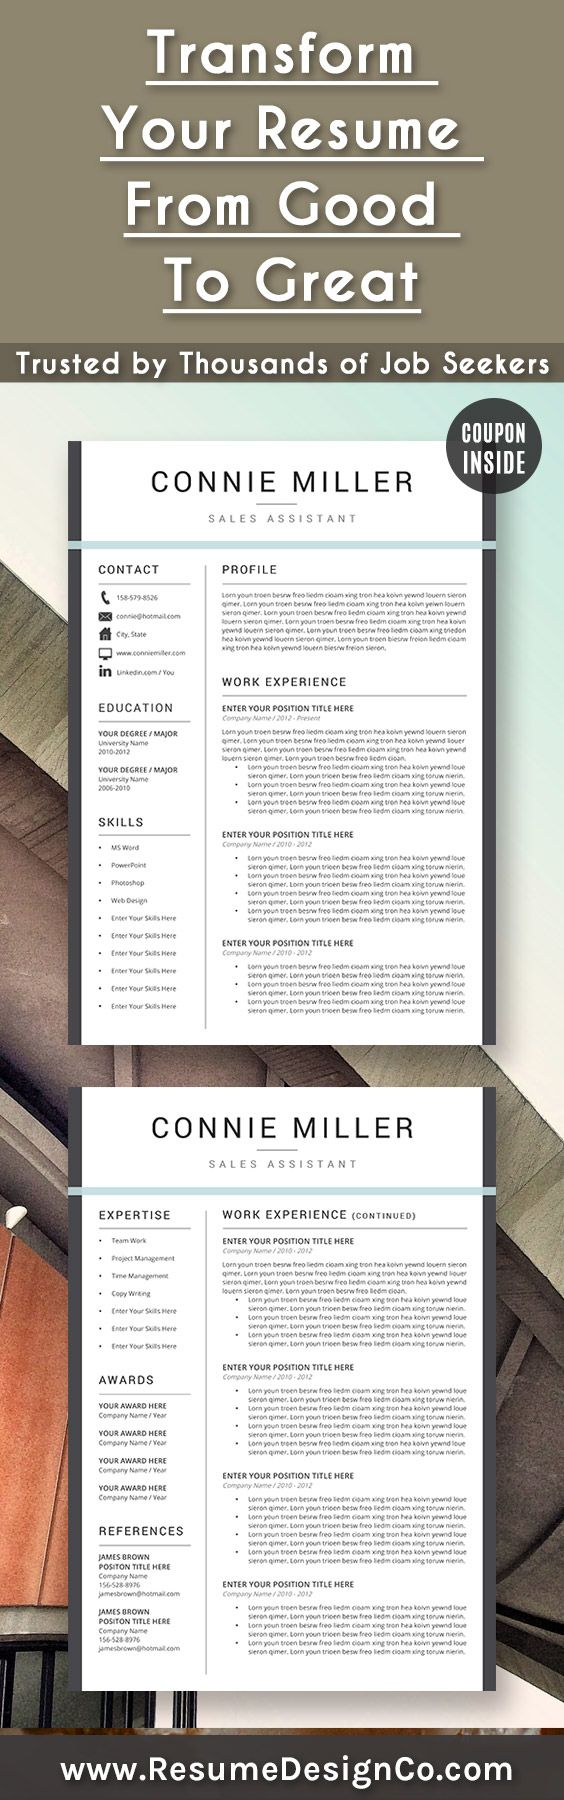 cover letter examples it job%0A Transform your resume from good to great  Trusted by thousands of job  seekers u